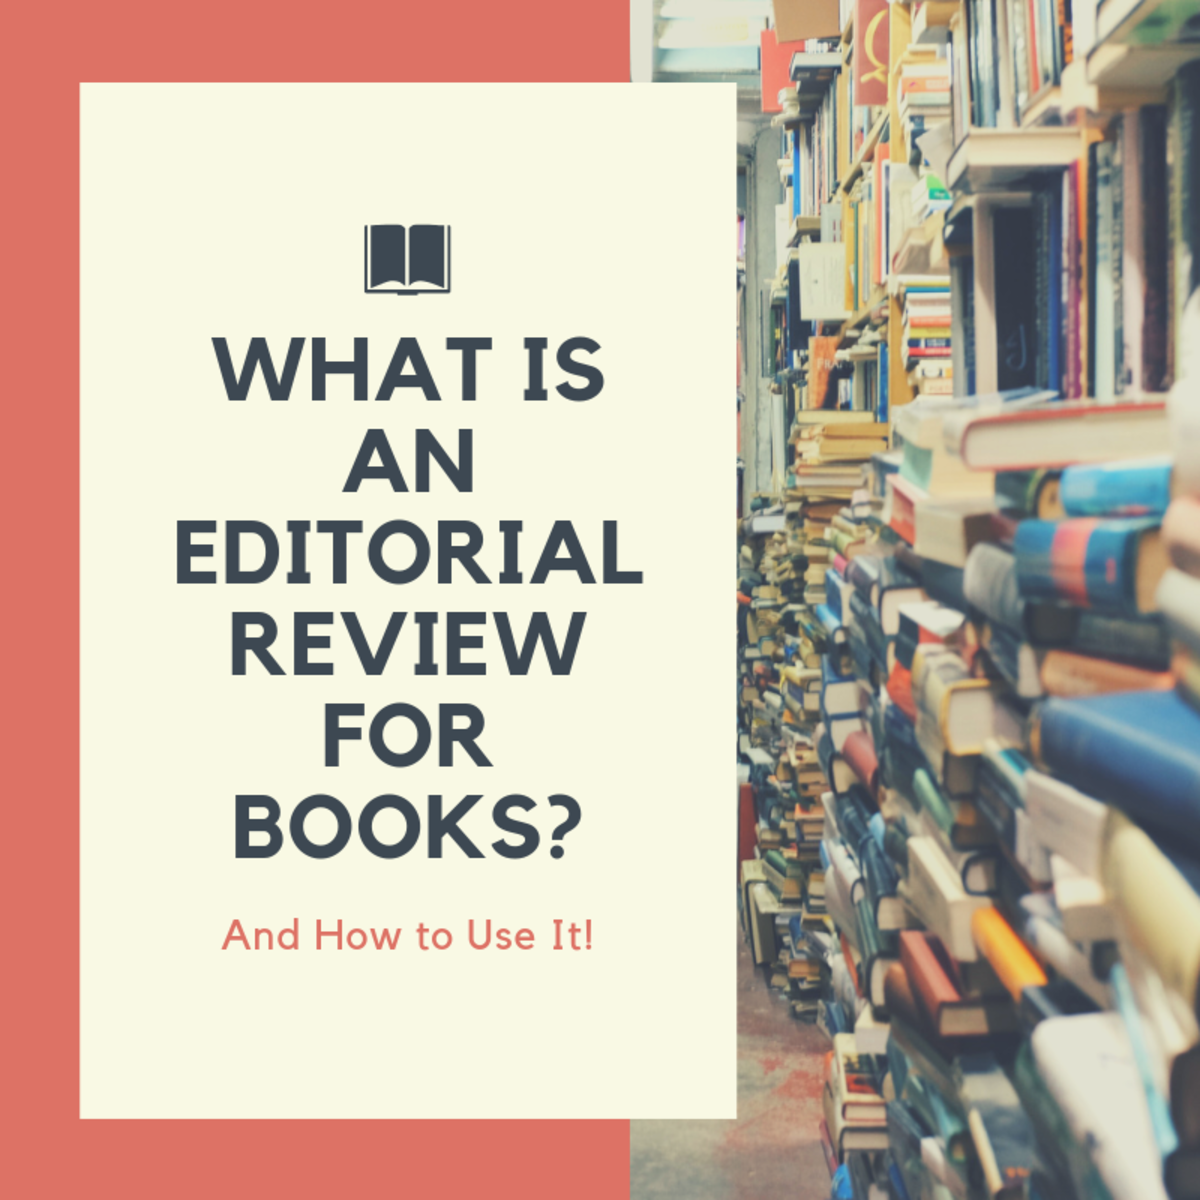 What is an Editorial Review?